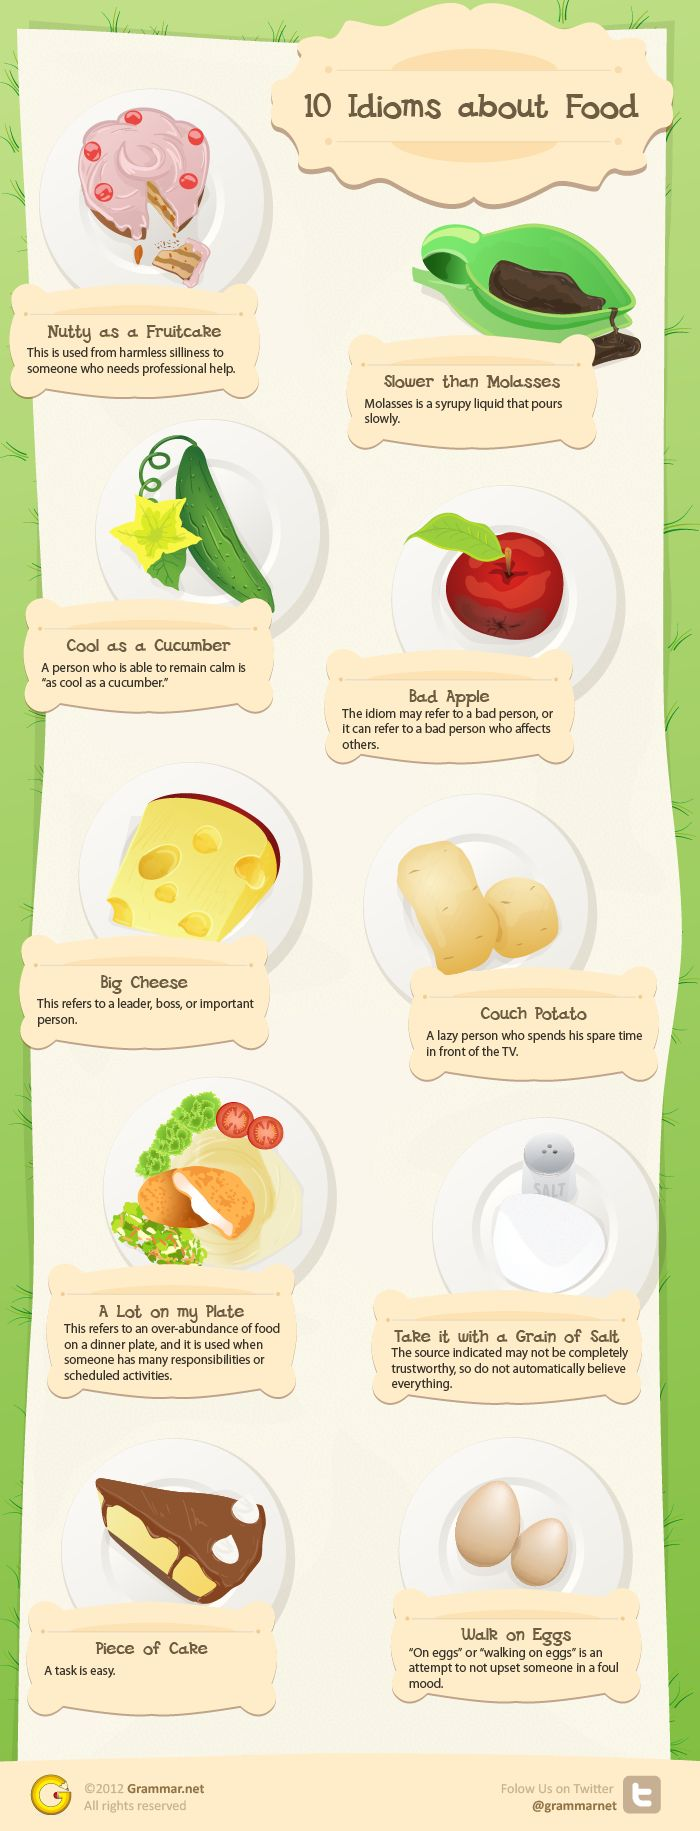 Fresh on IGM > Food Idioms English: English lesson No 10. Talk before eat them. 10 popular and tasty food related idioms to turn your listeners appetite on. > http://infographicsmania.com/food-idioms-english/